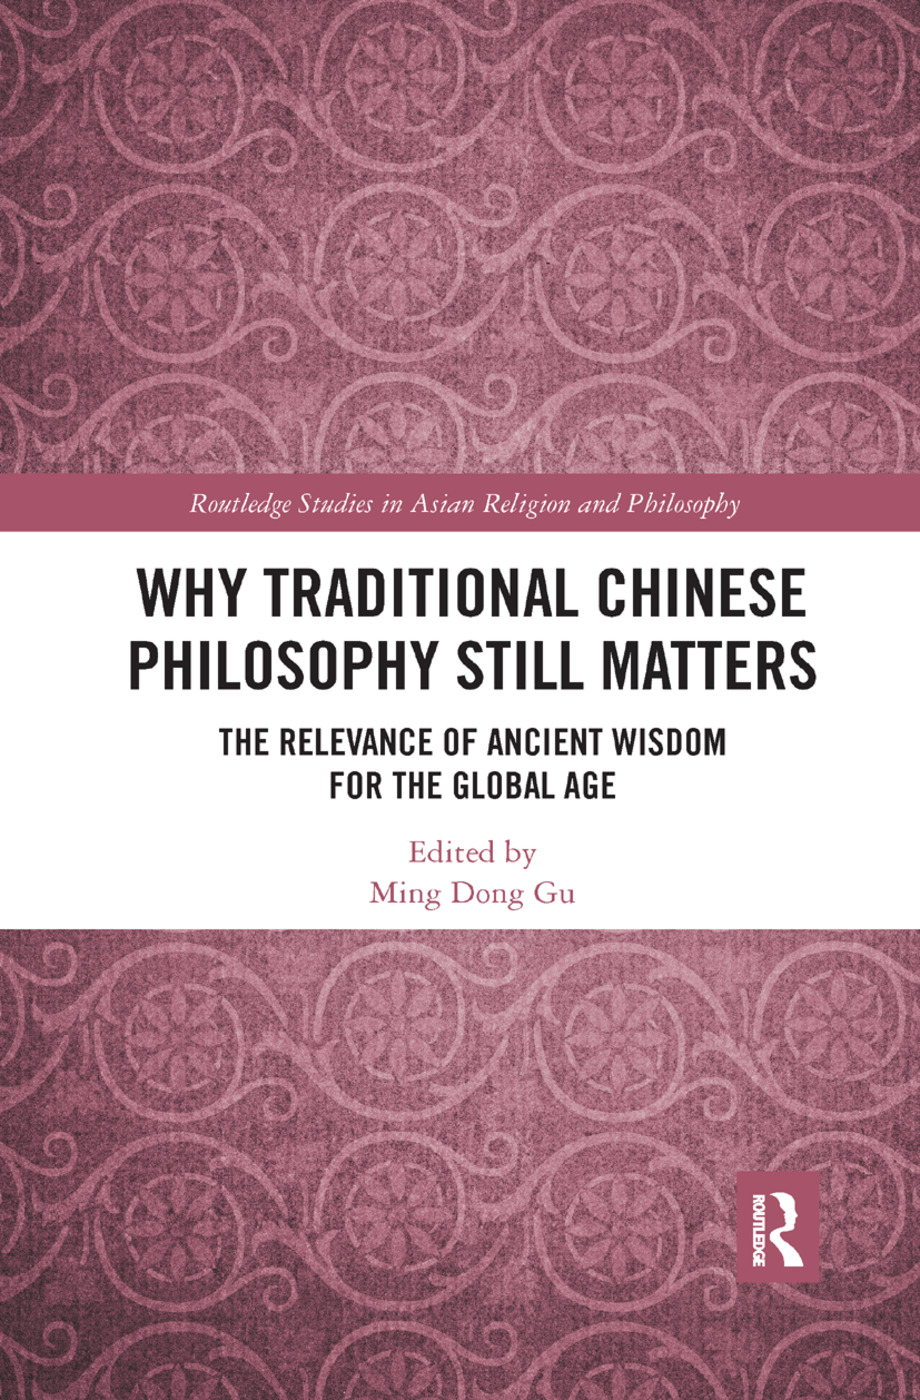 Why Traditional Chinese Philosophy Still Matters: The Relevance of Ancient Wisdom for the Global Age book cover